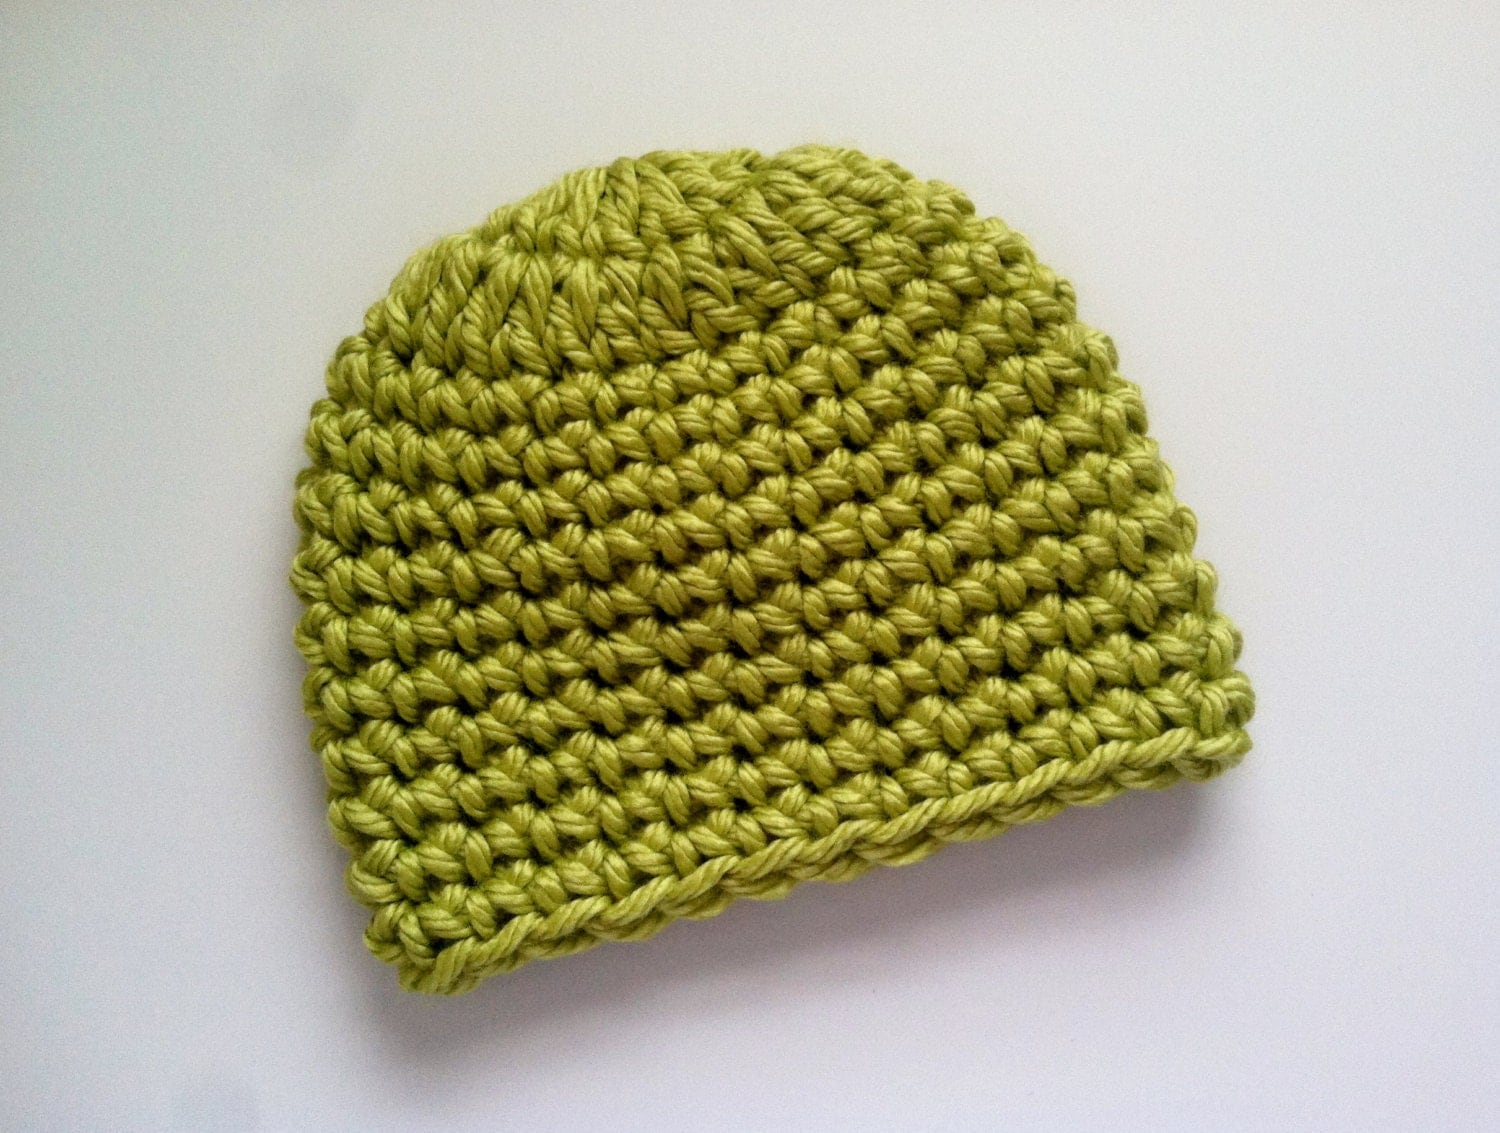 Crochet Baby Hat Pattern With Super Bulky Yarn : Crocheted Lime Green Super Bulky Hat Chunky Beanies Unisex